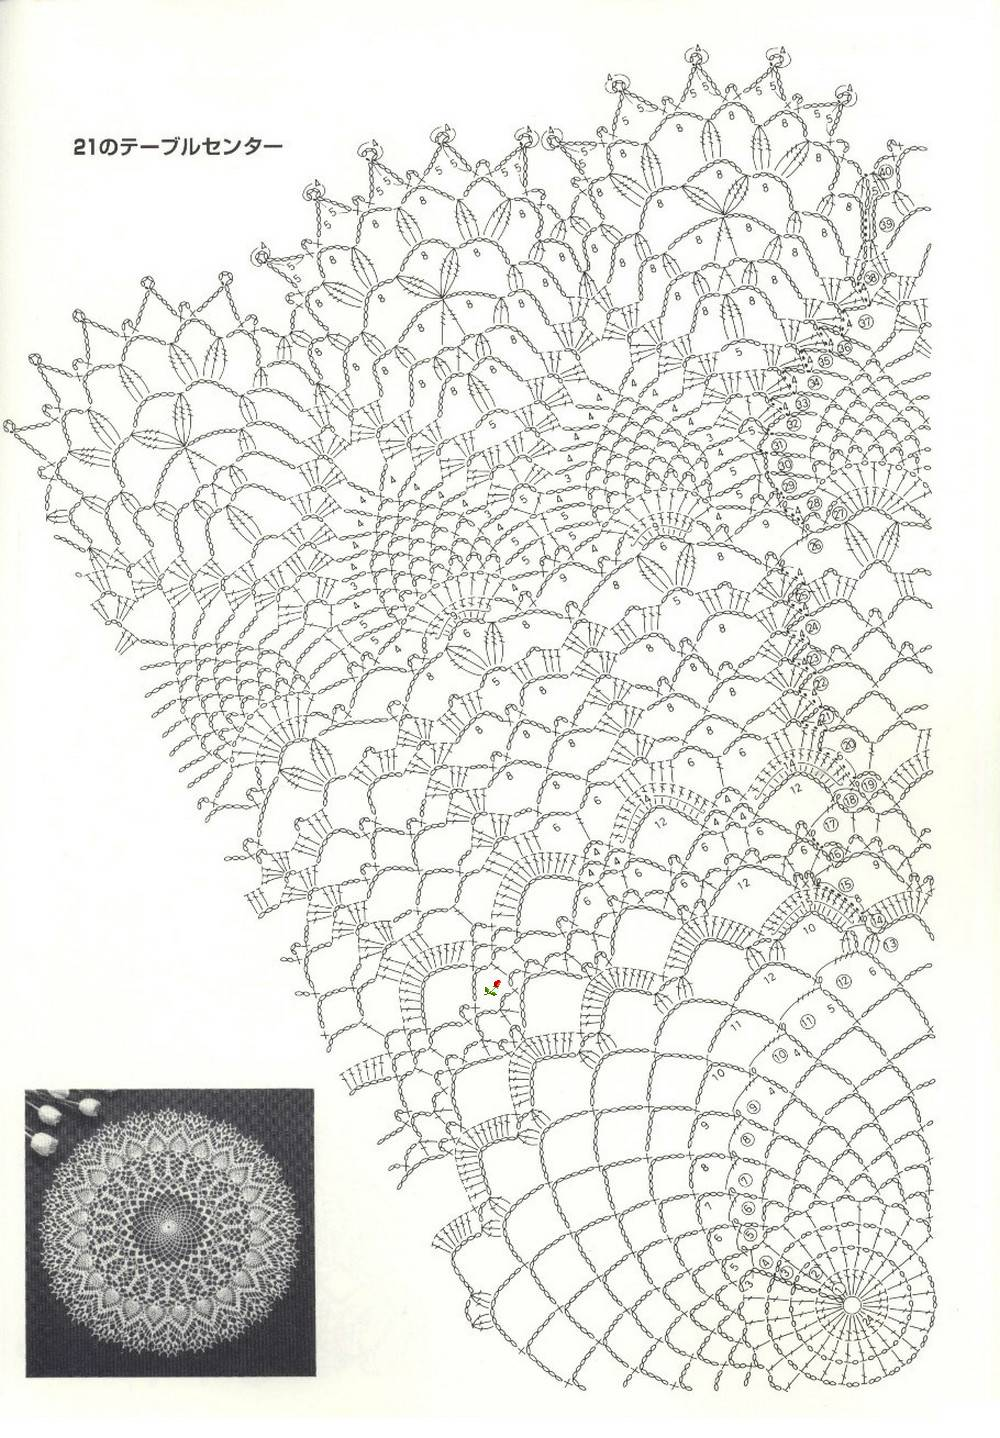 Crochet Patterns Diagram : crochet doily lace free pattern diagram ? Crochet Kingdom